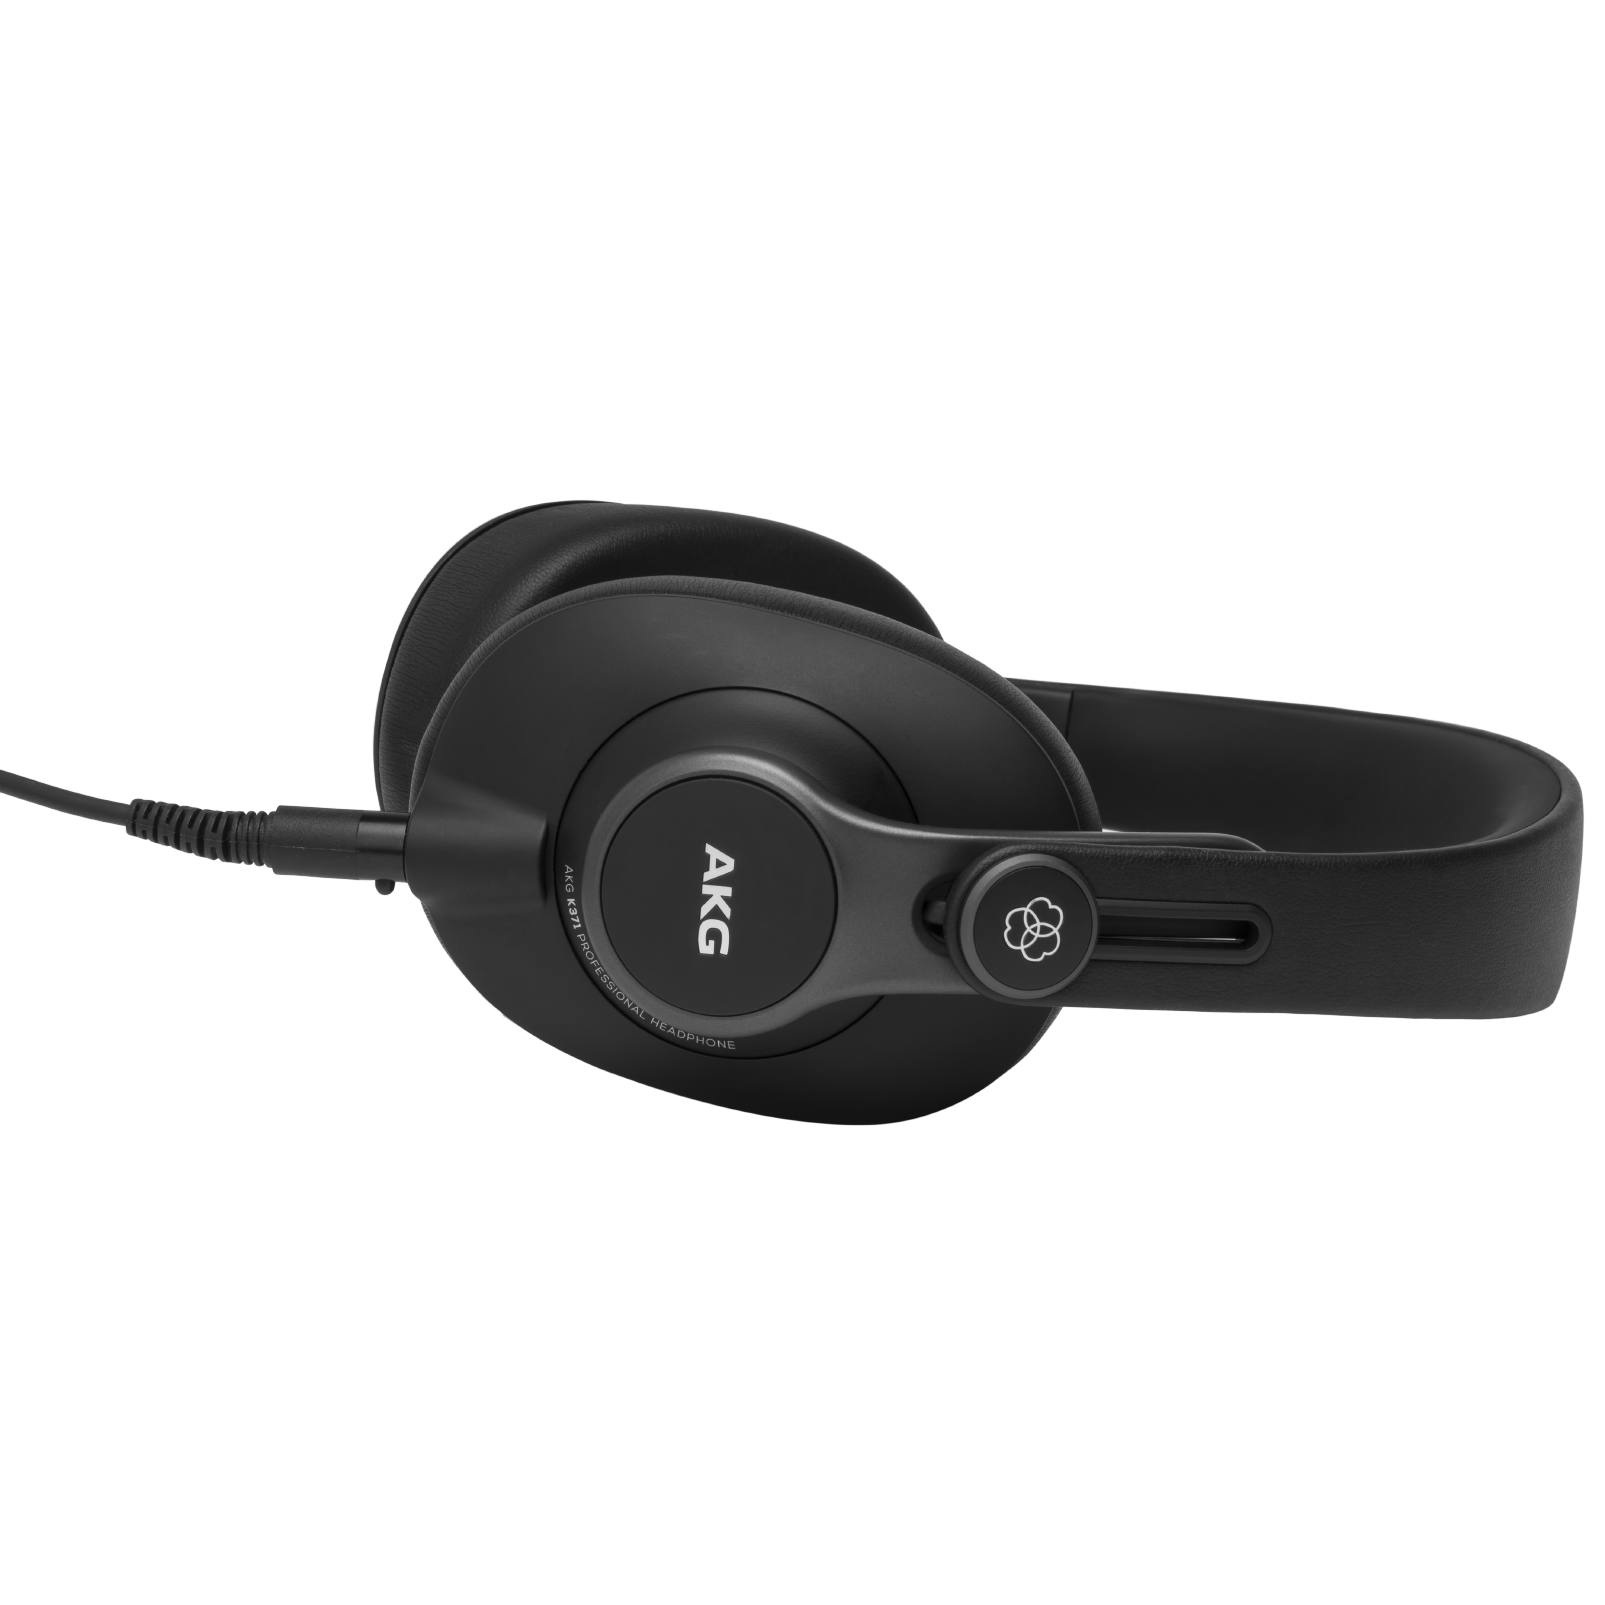 K371 - Black - Over-ear, closed-back, foldable studio headphones - Left